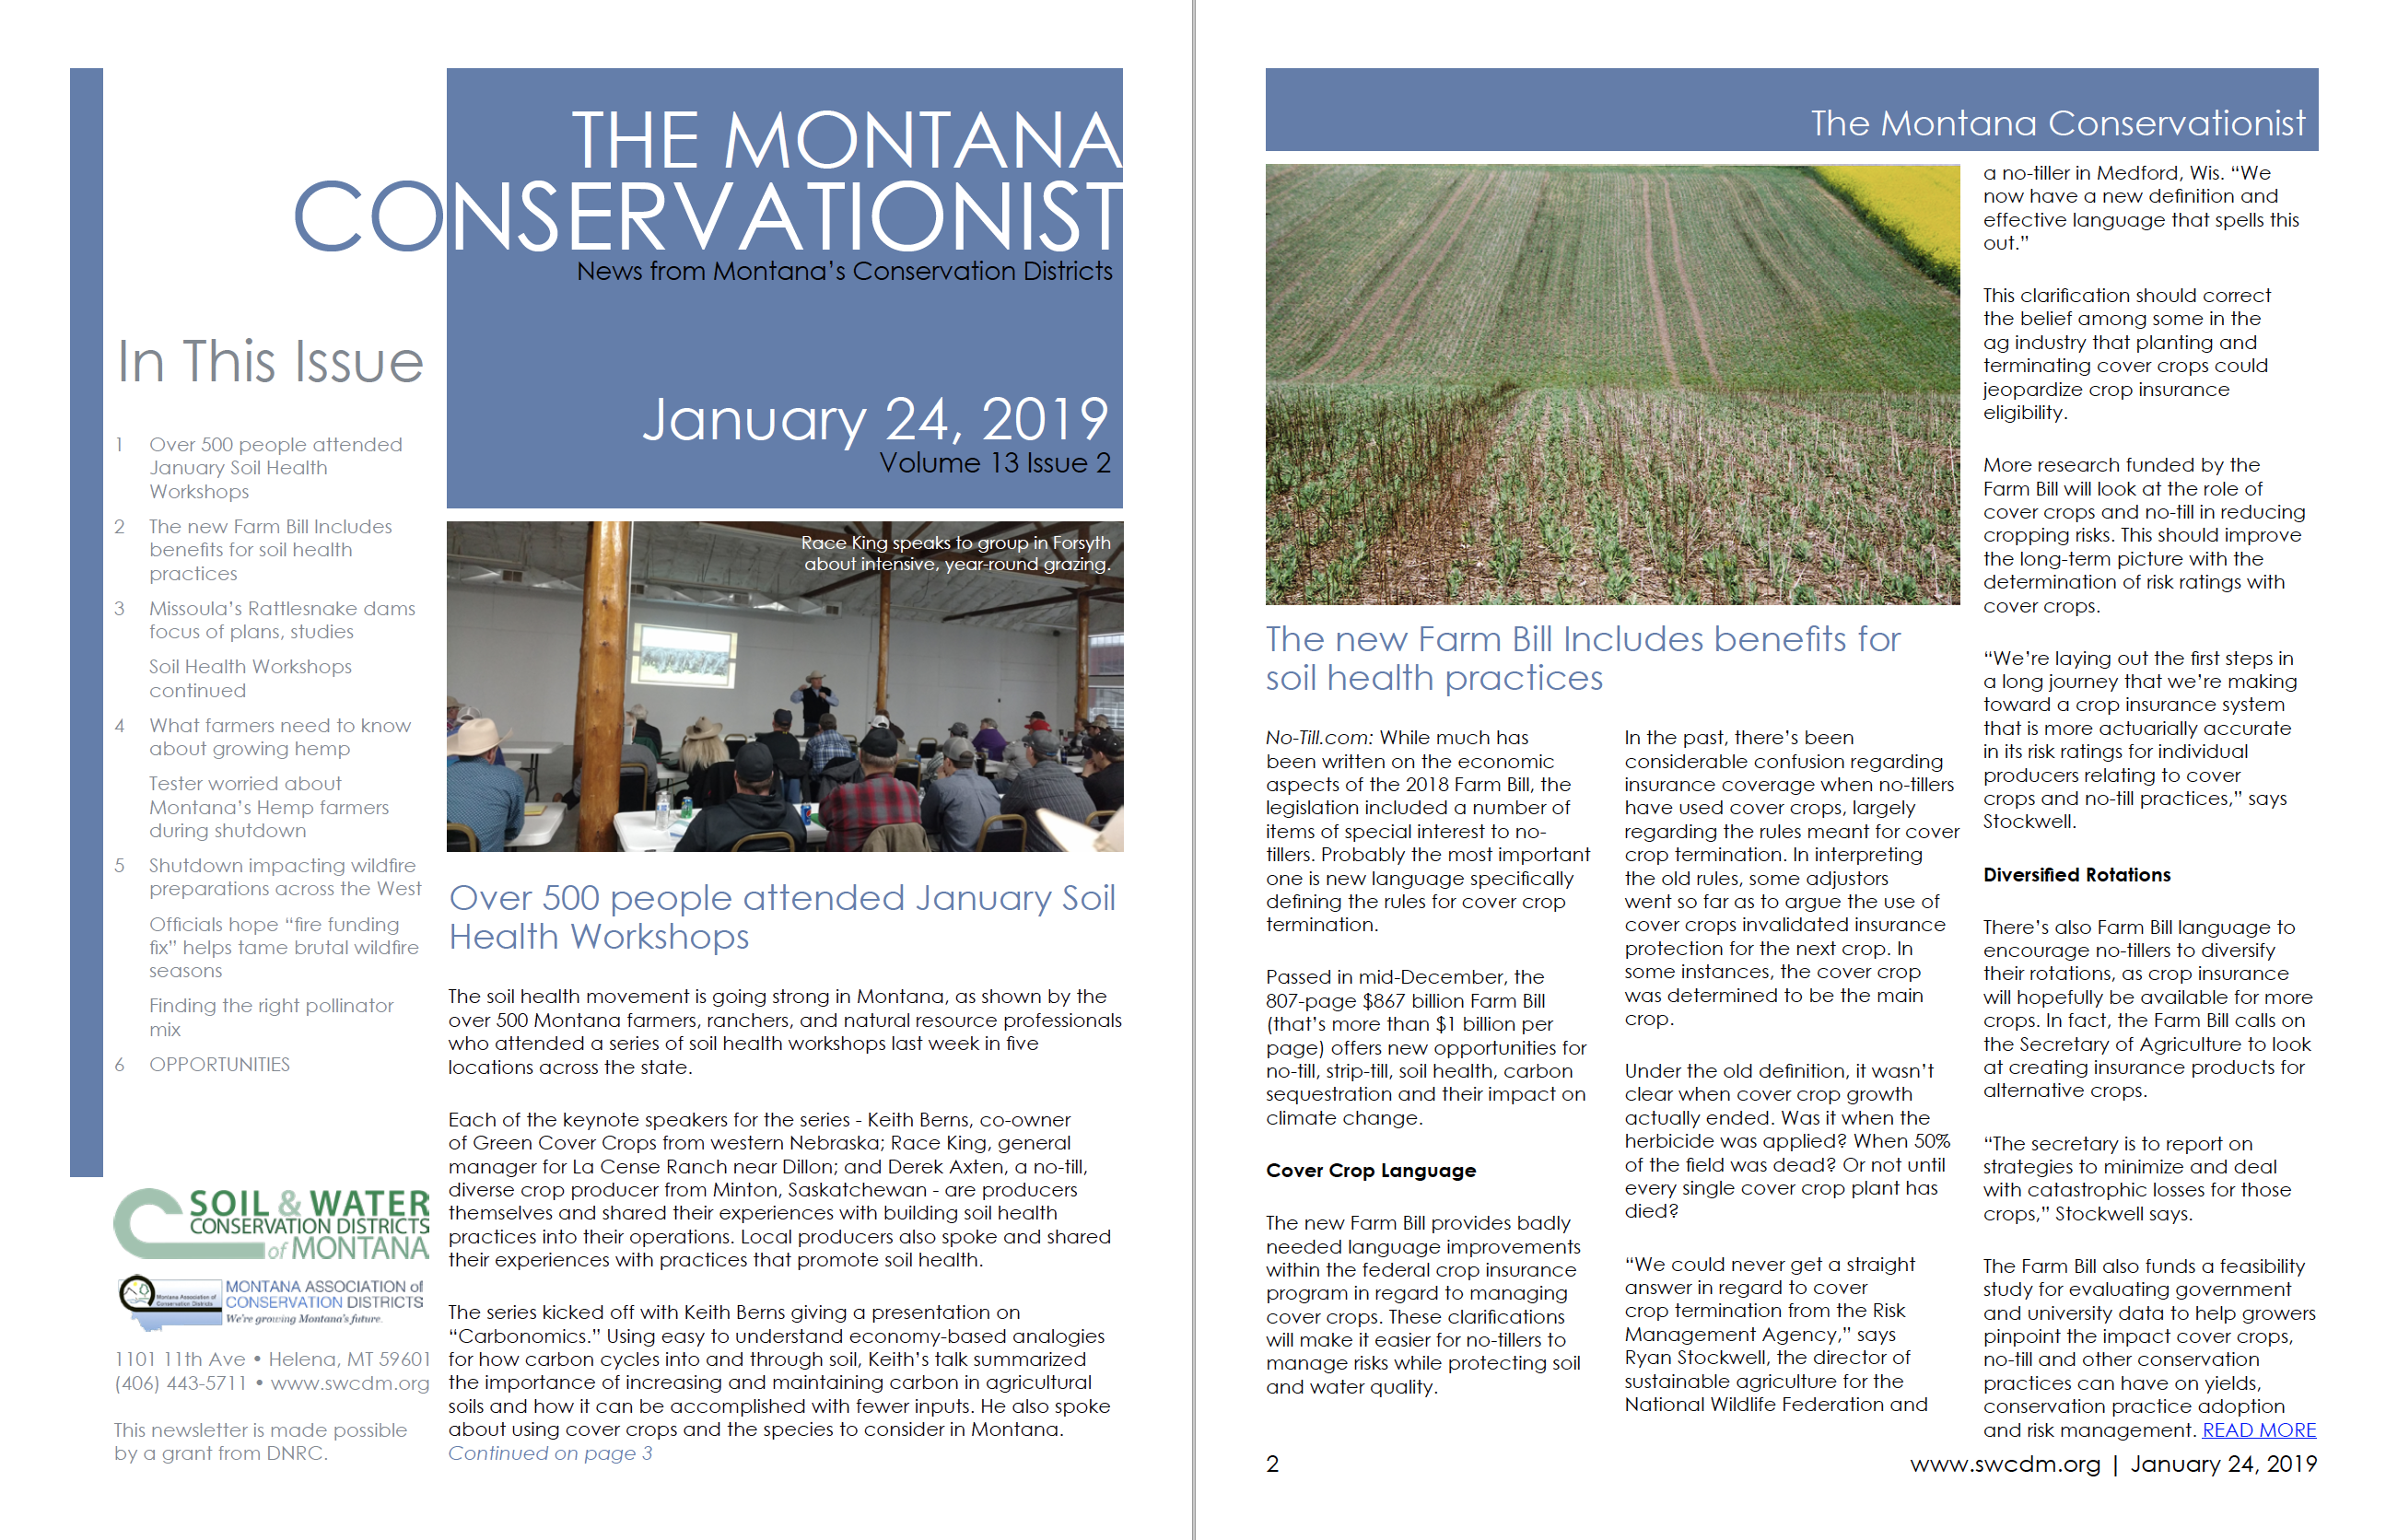 The Montana Conservationist January 24